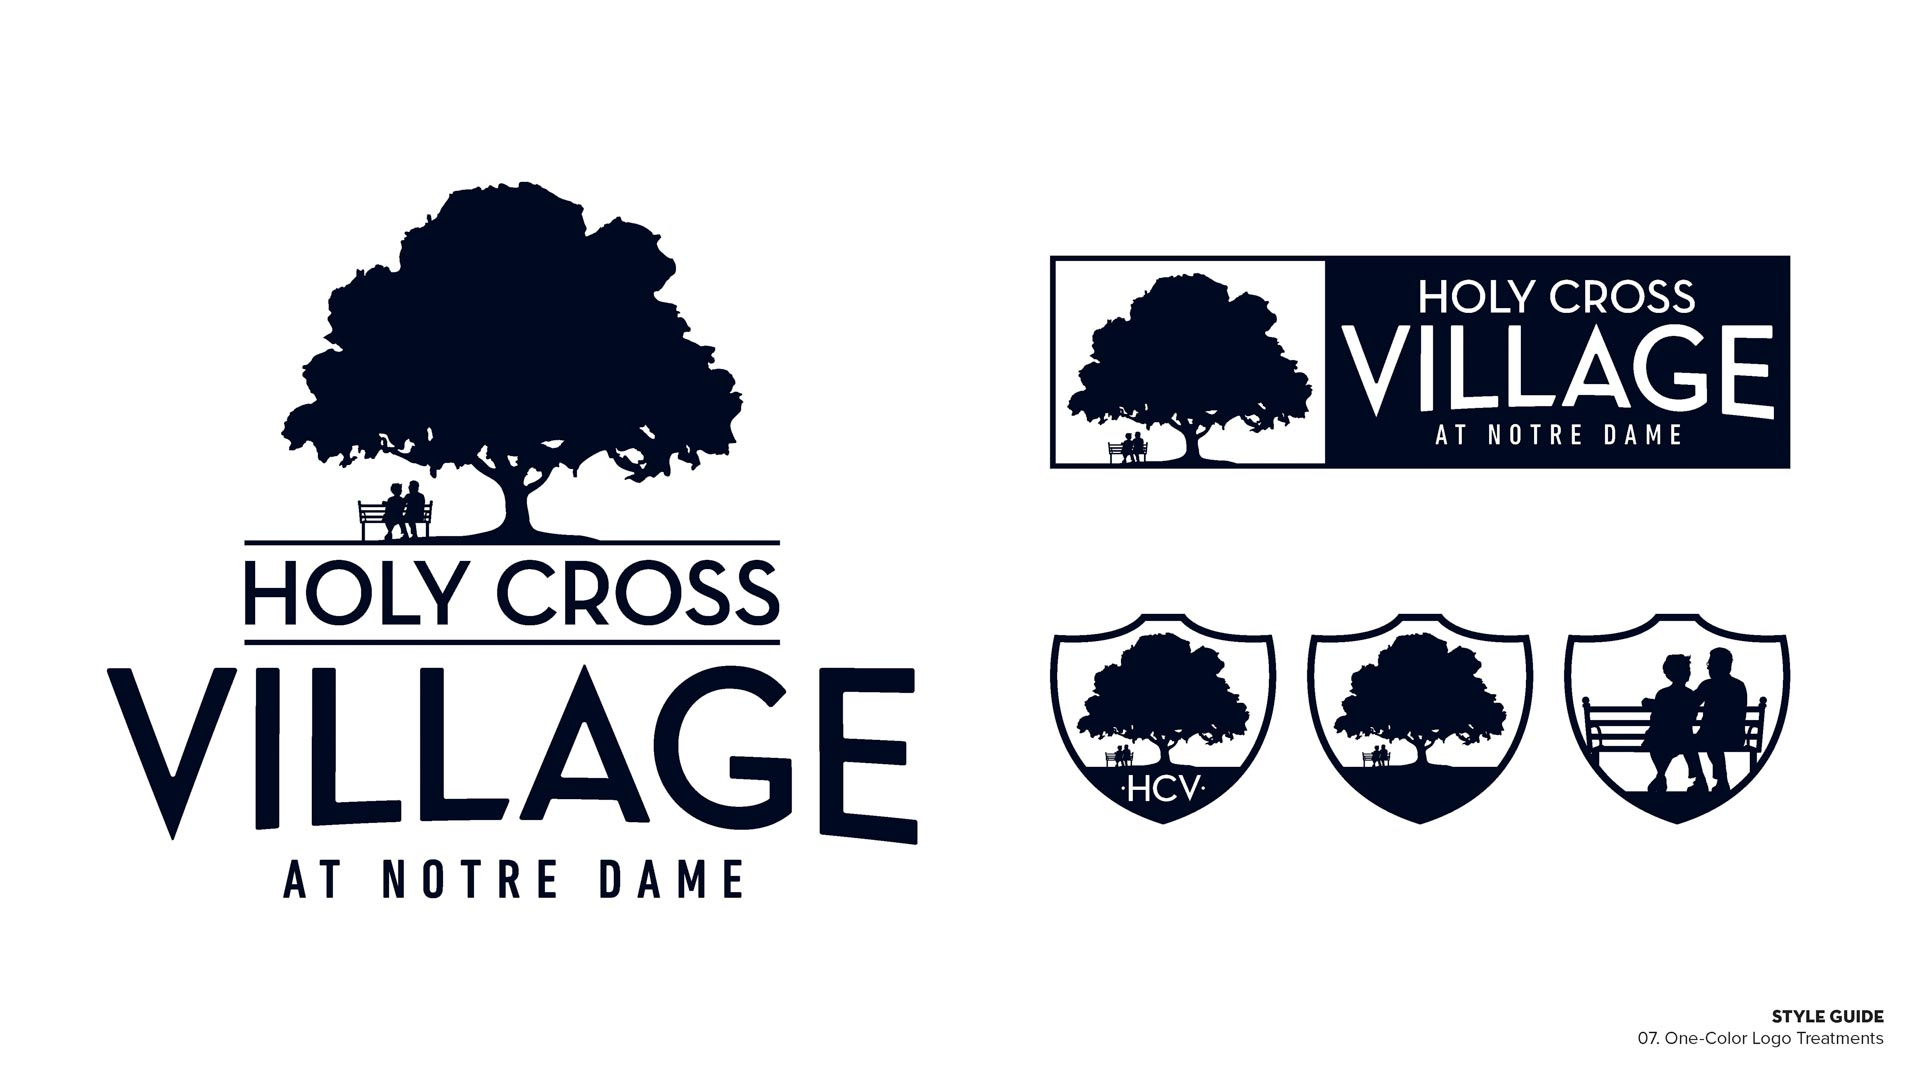 Holy Cross Village's One Color Logo Treatments